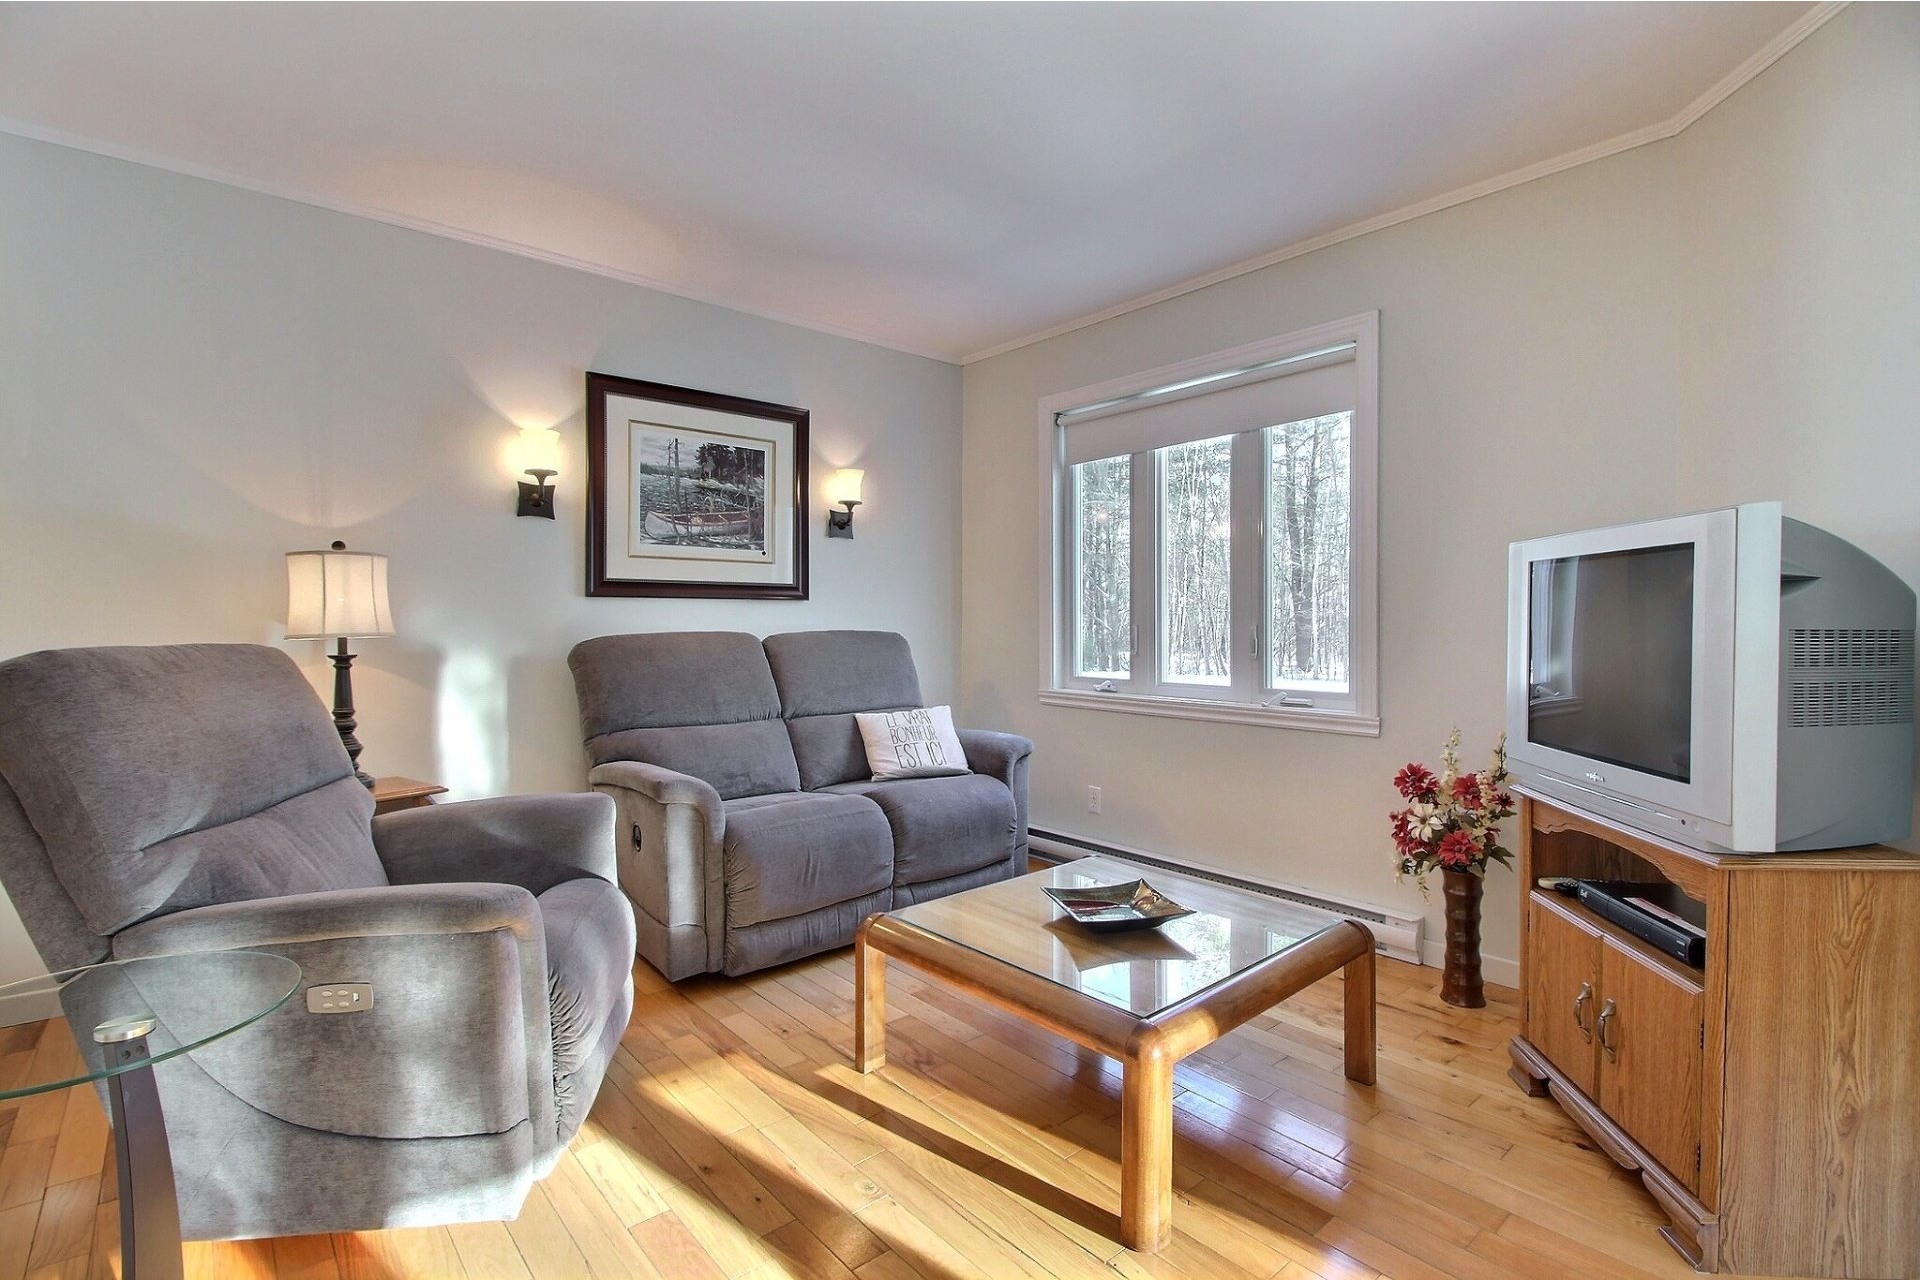 image 4 - House For sale Rawdon - 8 rooms